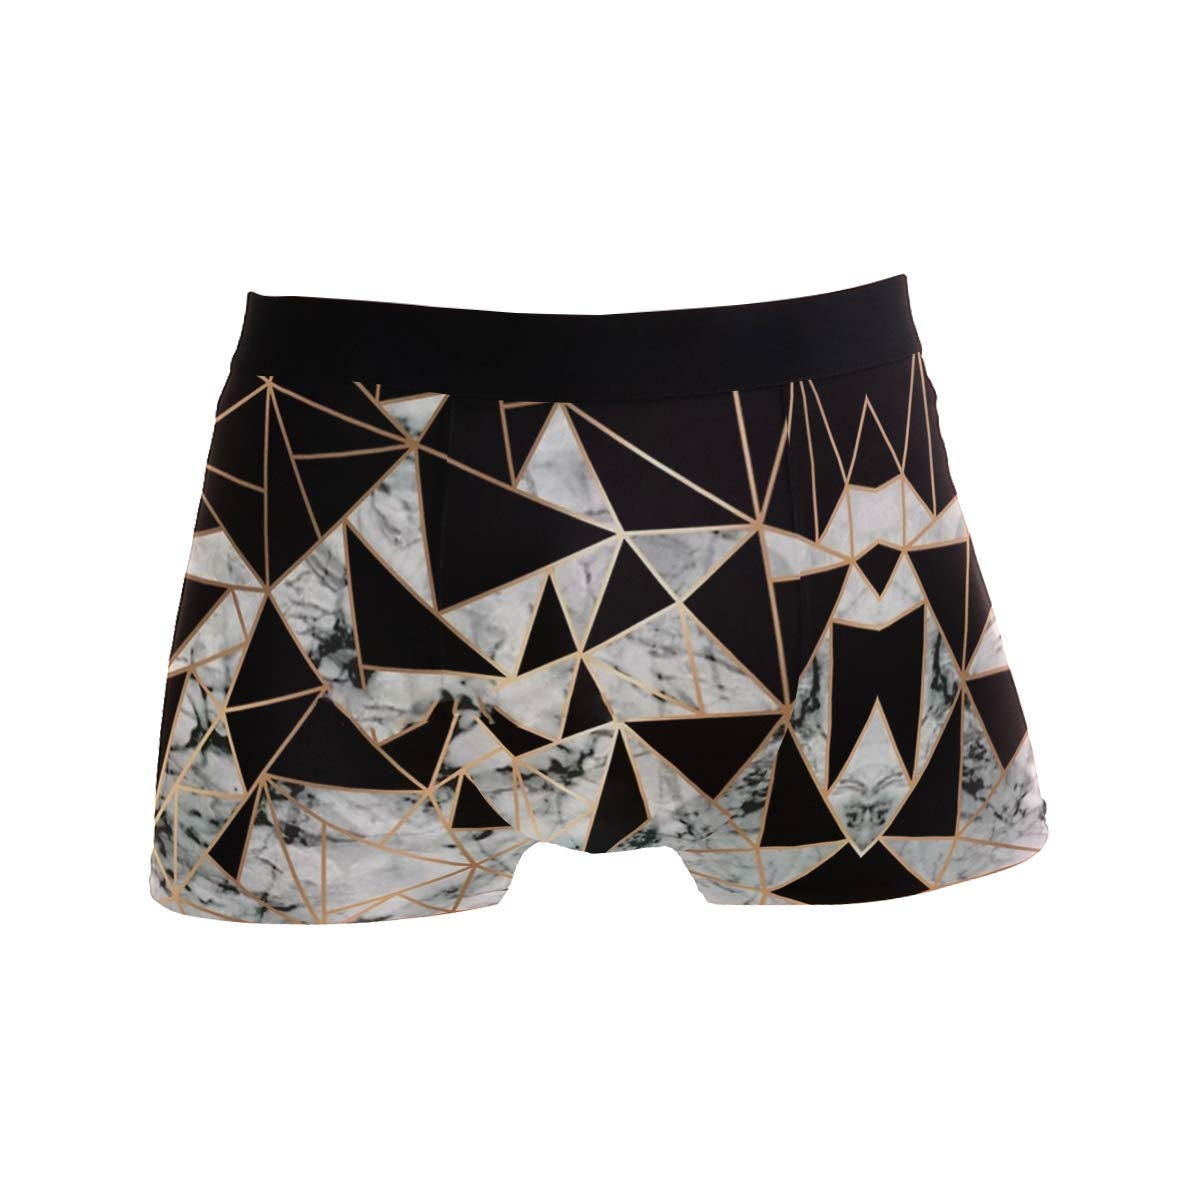 Charlley Lee Mens Soft Breathable Marble Polygon Underwear Boxer Briefs